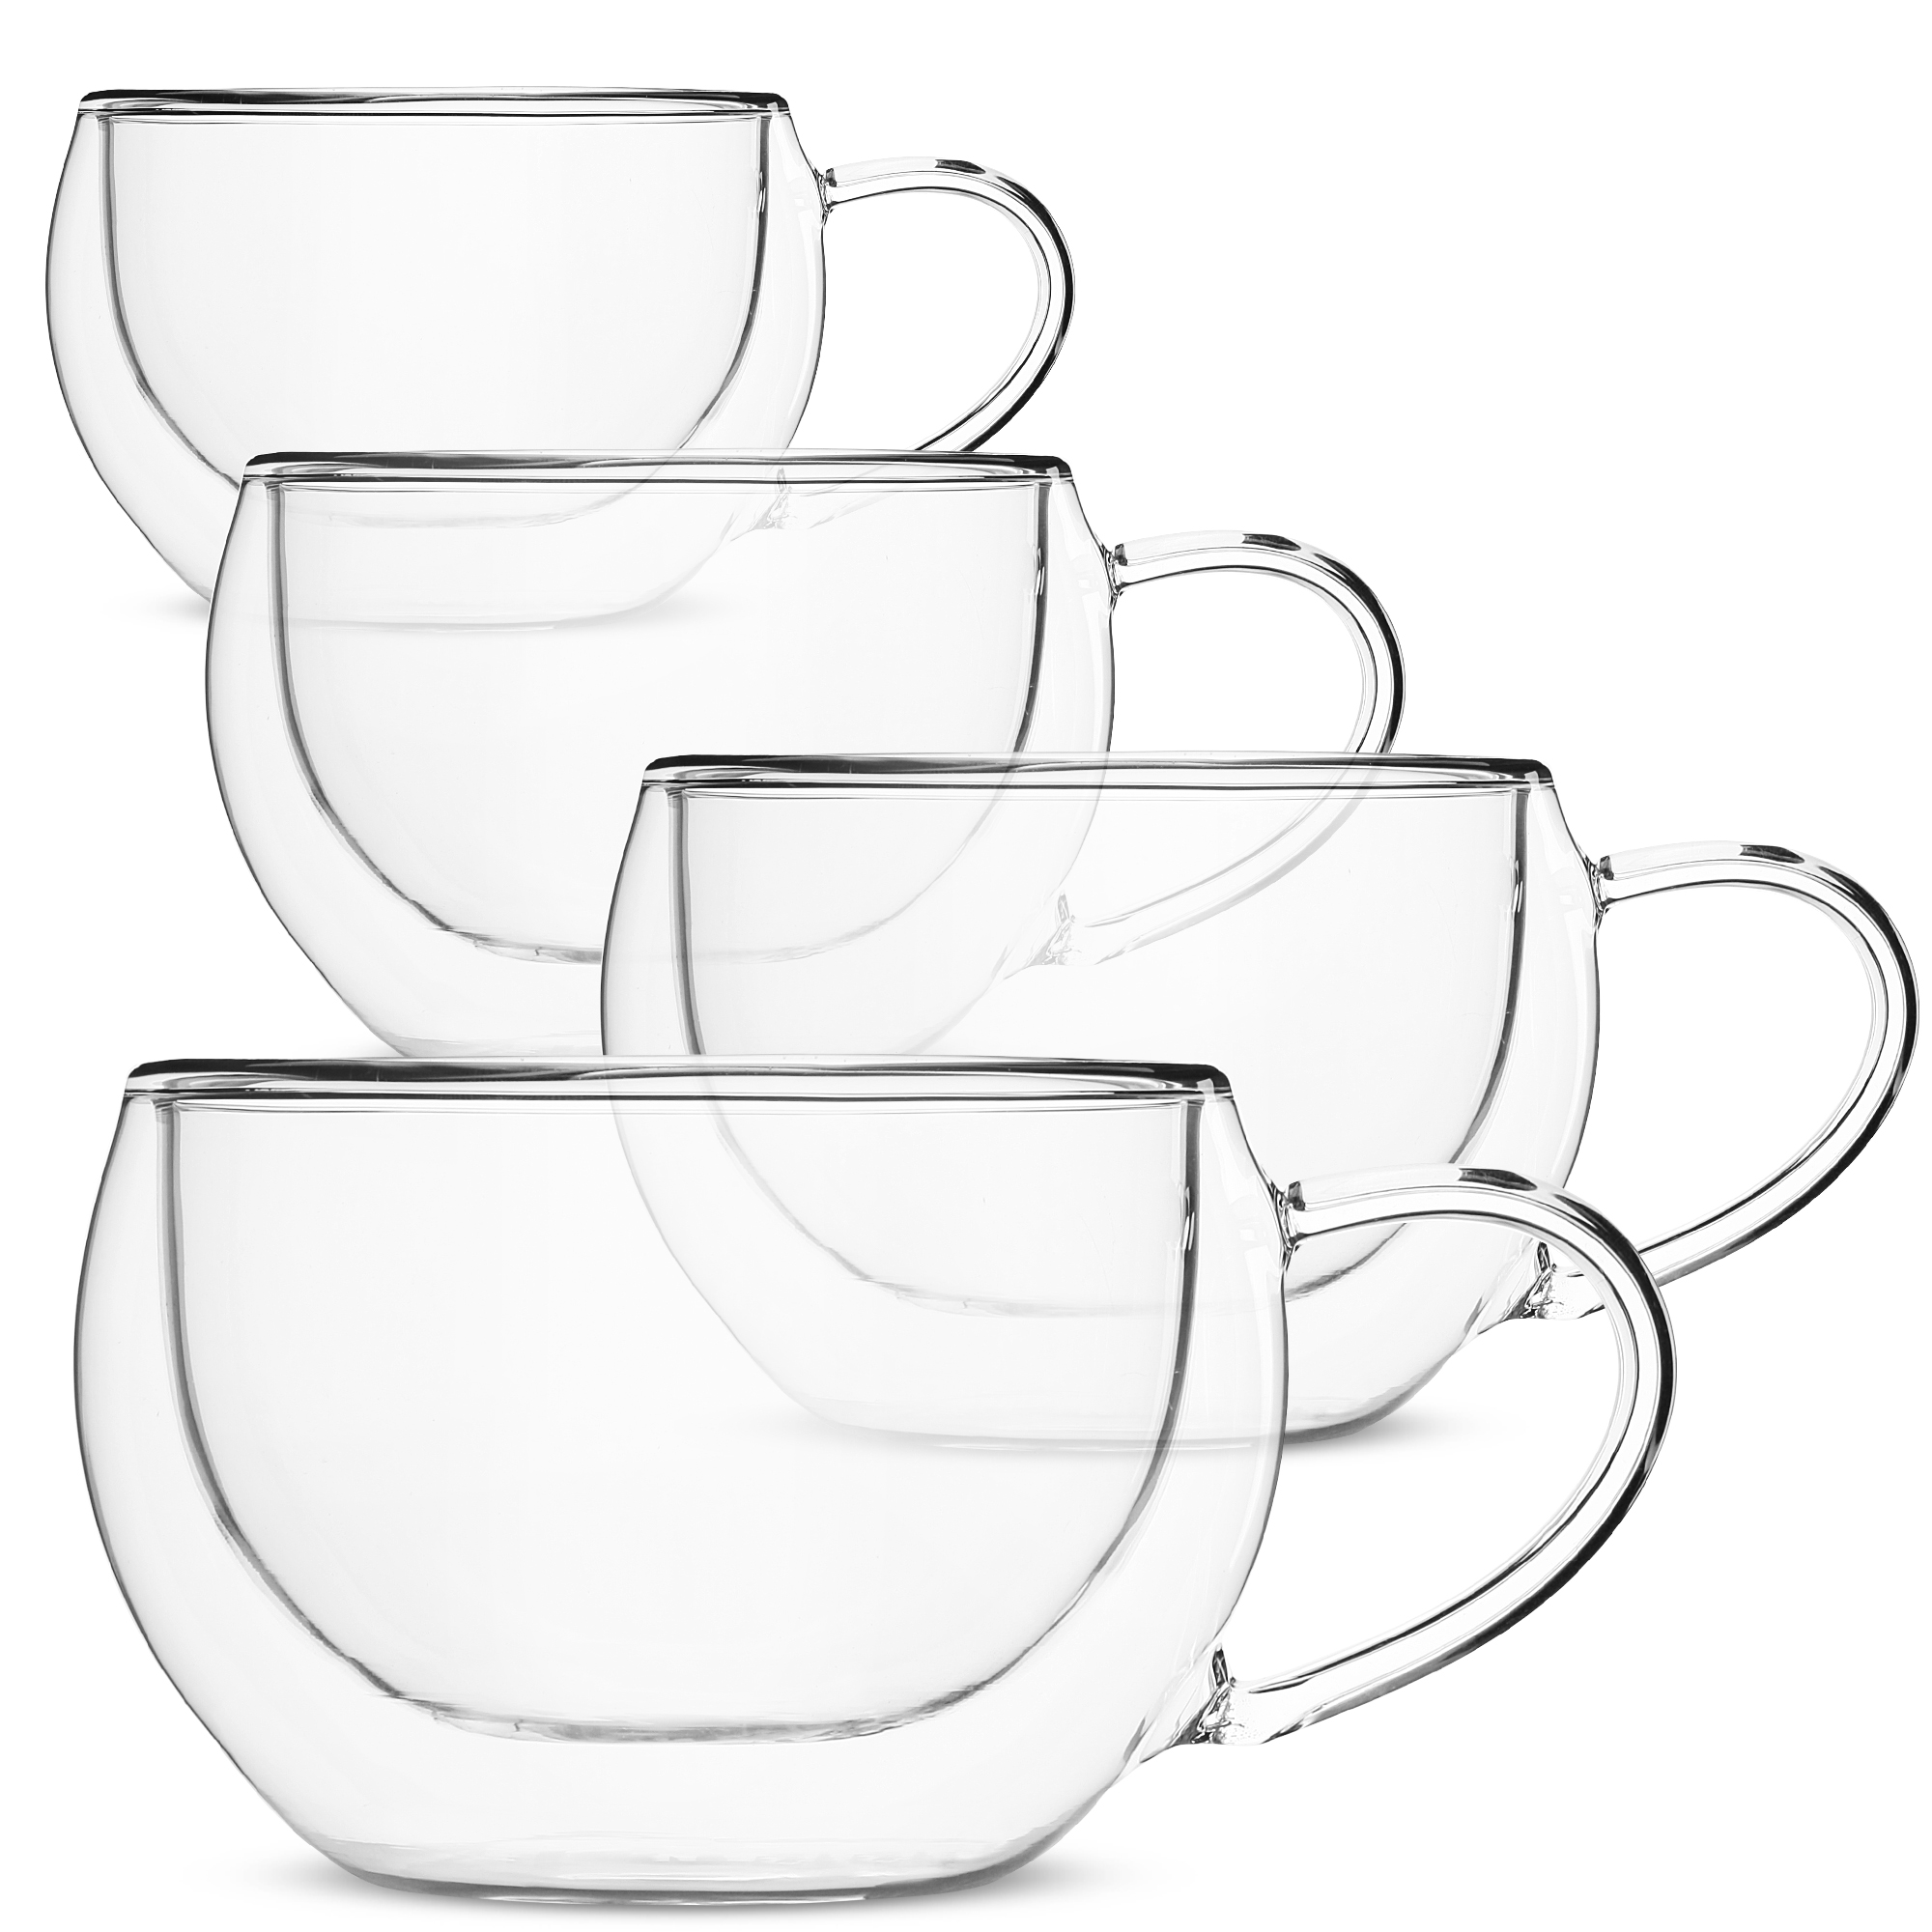 193768942093 BTäT- Insulated Coffee Cups, Set of 4 (10 oz, 300 ml)Double Wall ...